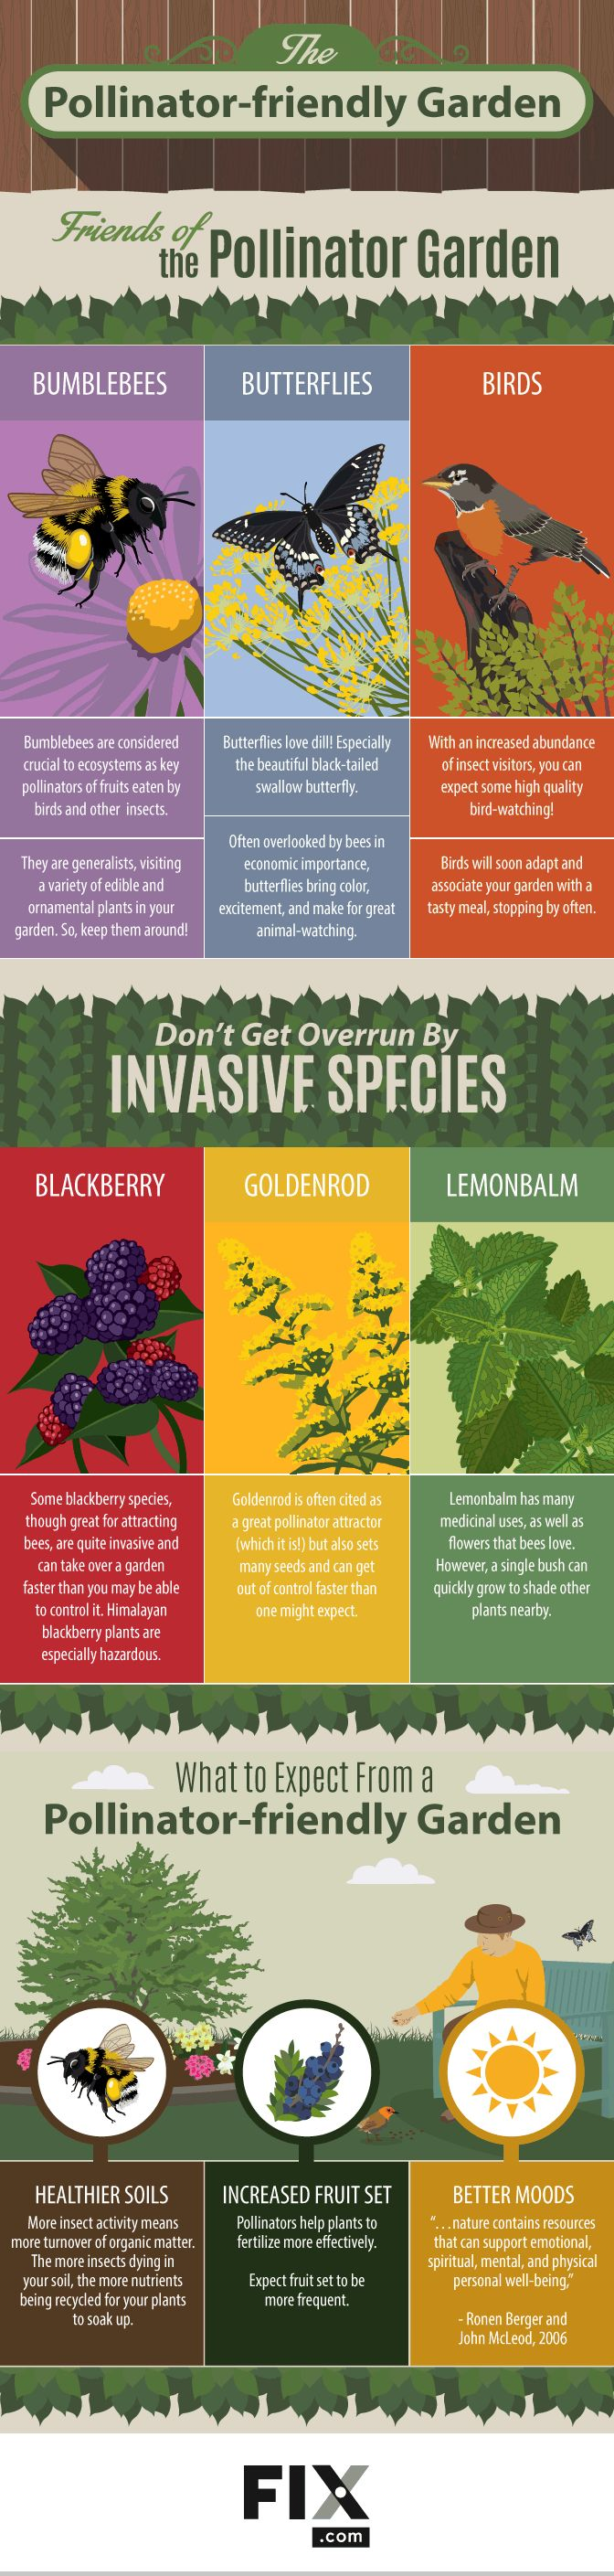 Creating a pollinator garden is easy when you realize that regional animal species want to be near native plant species.